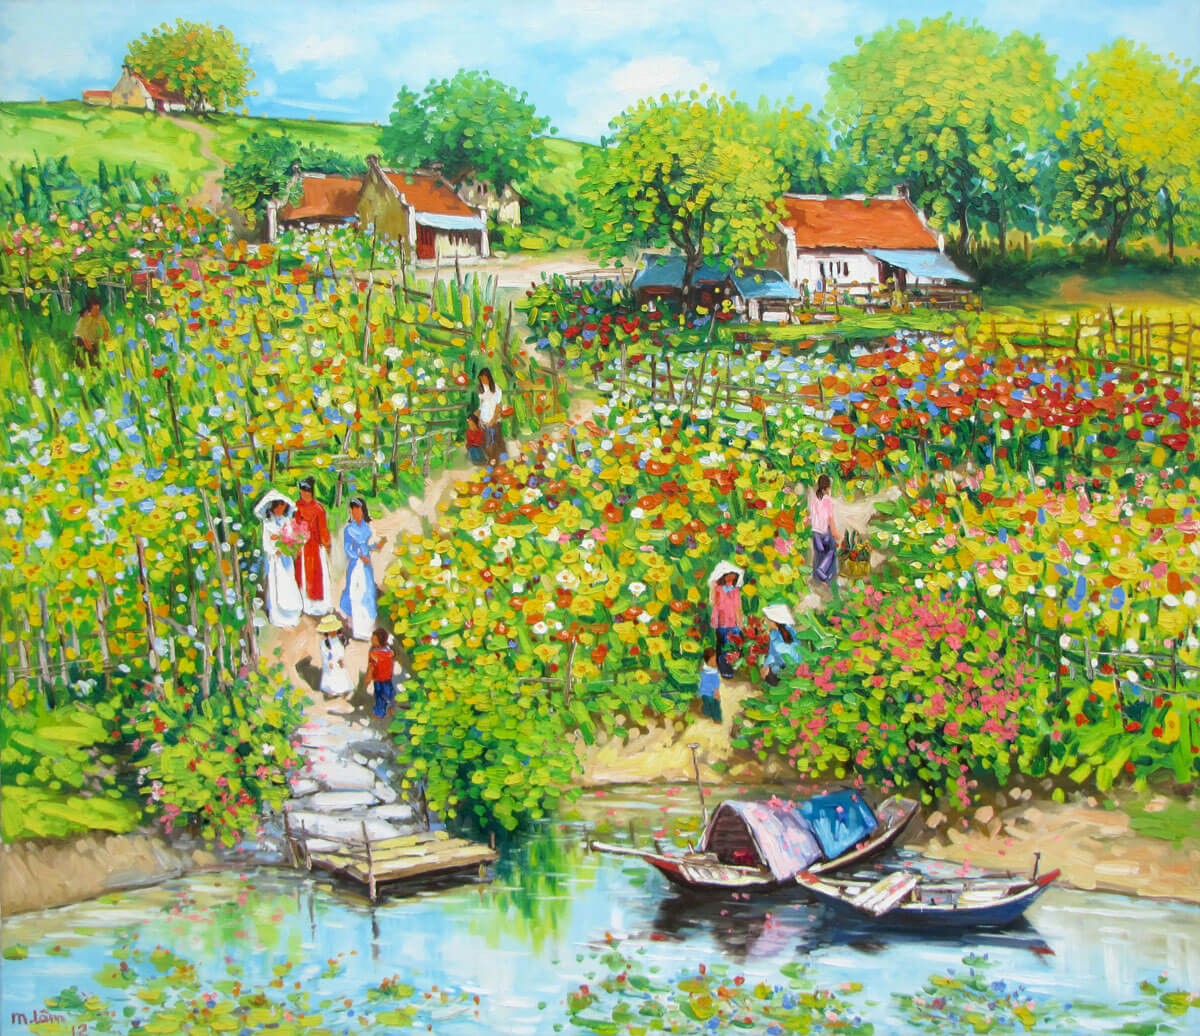 Flower garden by the river-Original Vietnamese Art